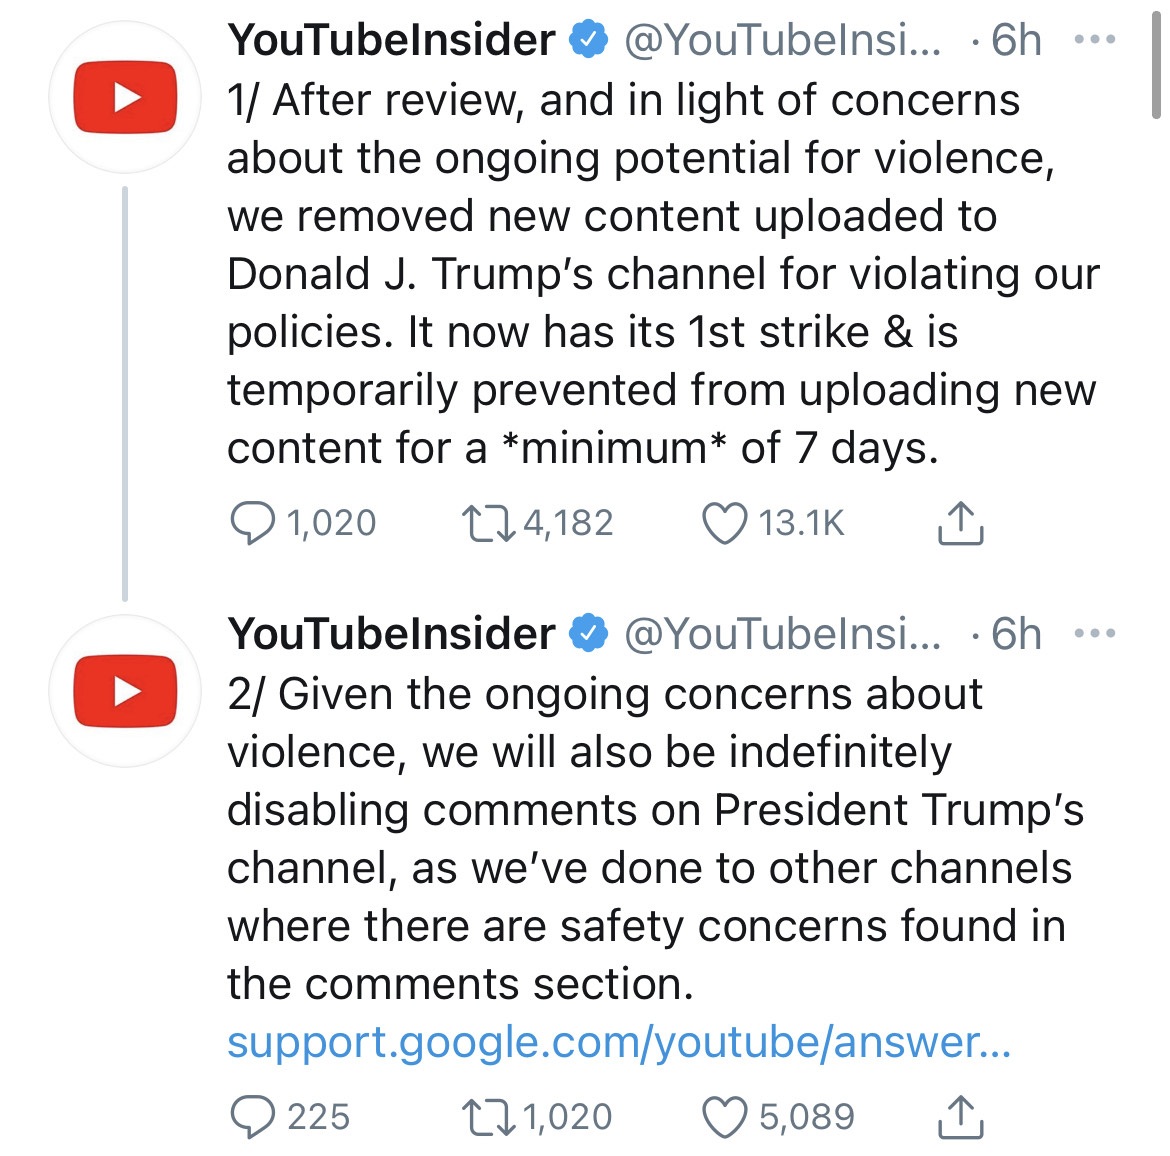 Trump Banned From YouTube Over Concerns Of 'Ongoing Potential For Violence'